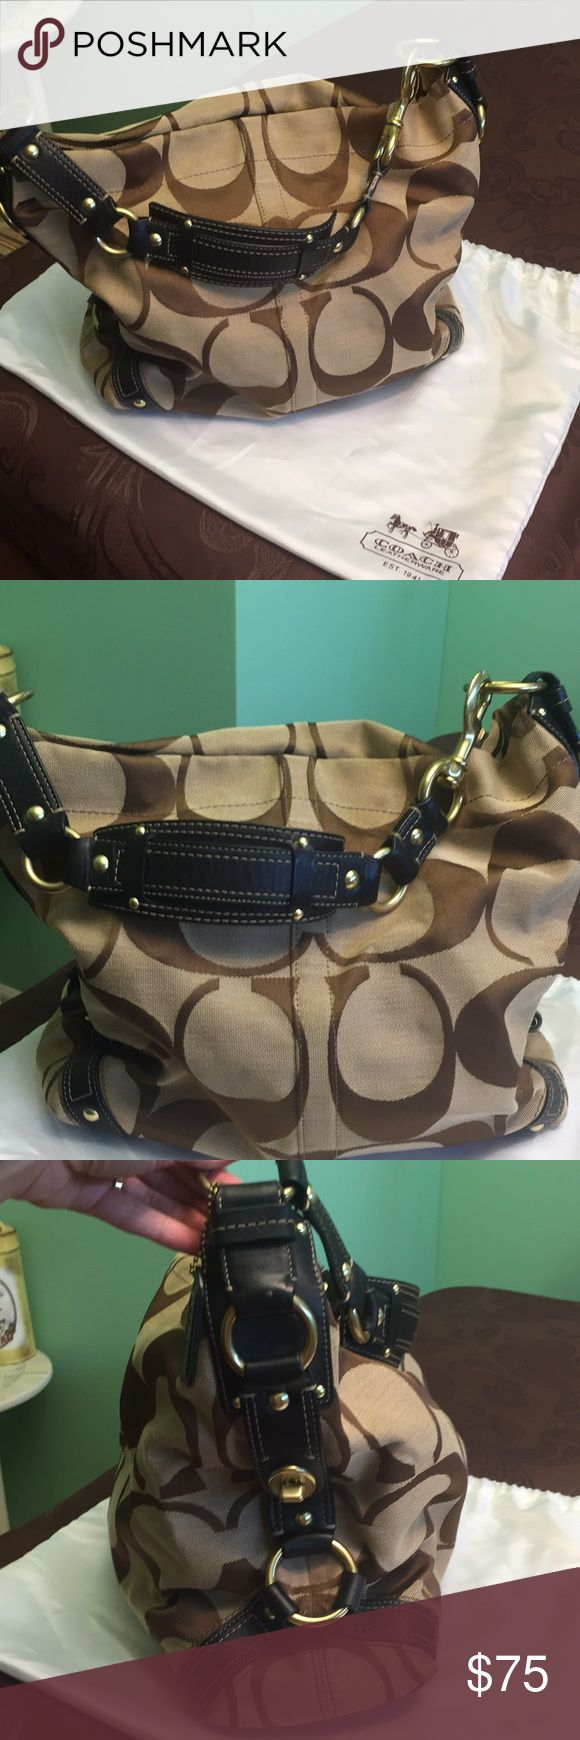 Coach Hobo Bag Beige/brown signature canvas Coach hobo shoulder bag with black leather strap. Comes with Coach dustbag for proper storage:) No stains, just a cleaning up of the brass metal rings and it looks brand new:)) Coach Bags Hobos